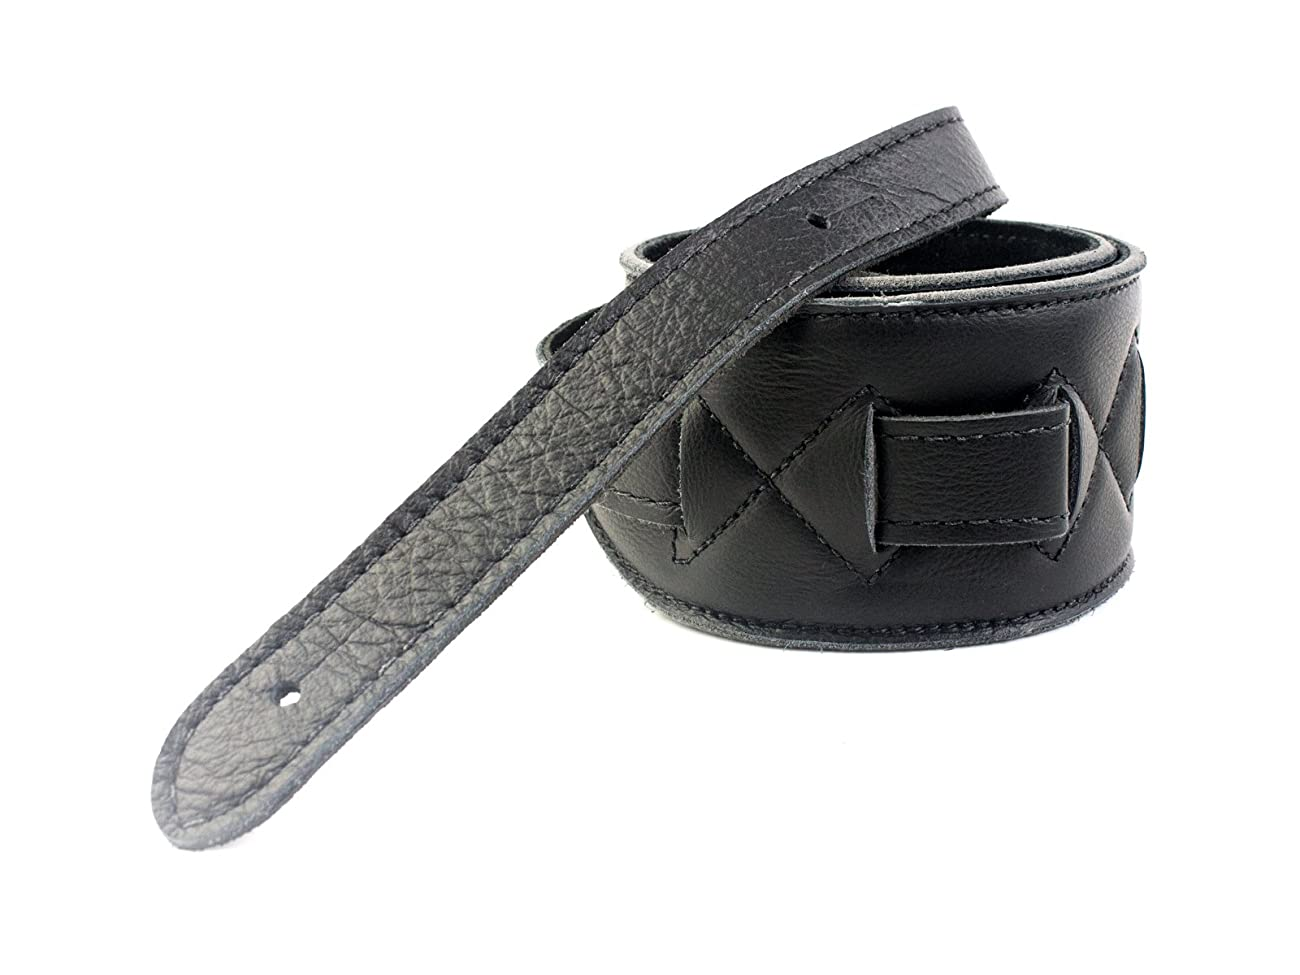 UK Made Black Vintage Extra Wide Soft Real Leather Guitar Strap with Buckle Adjustable Length 1